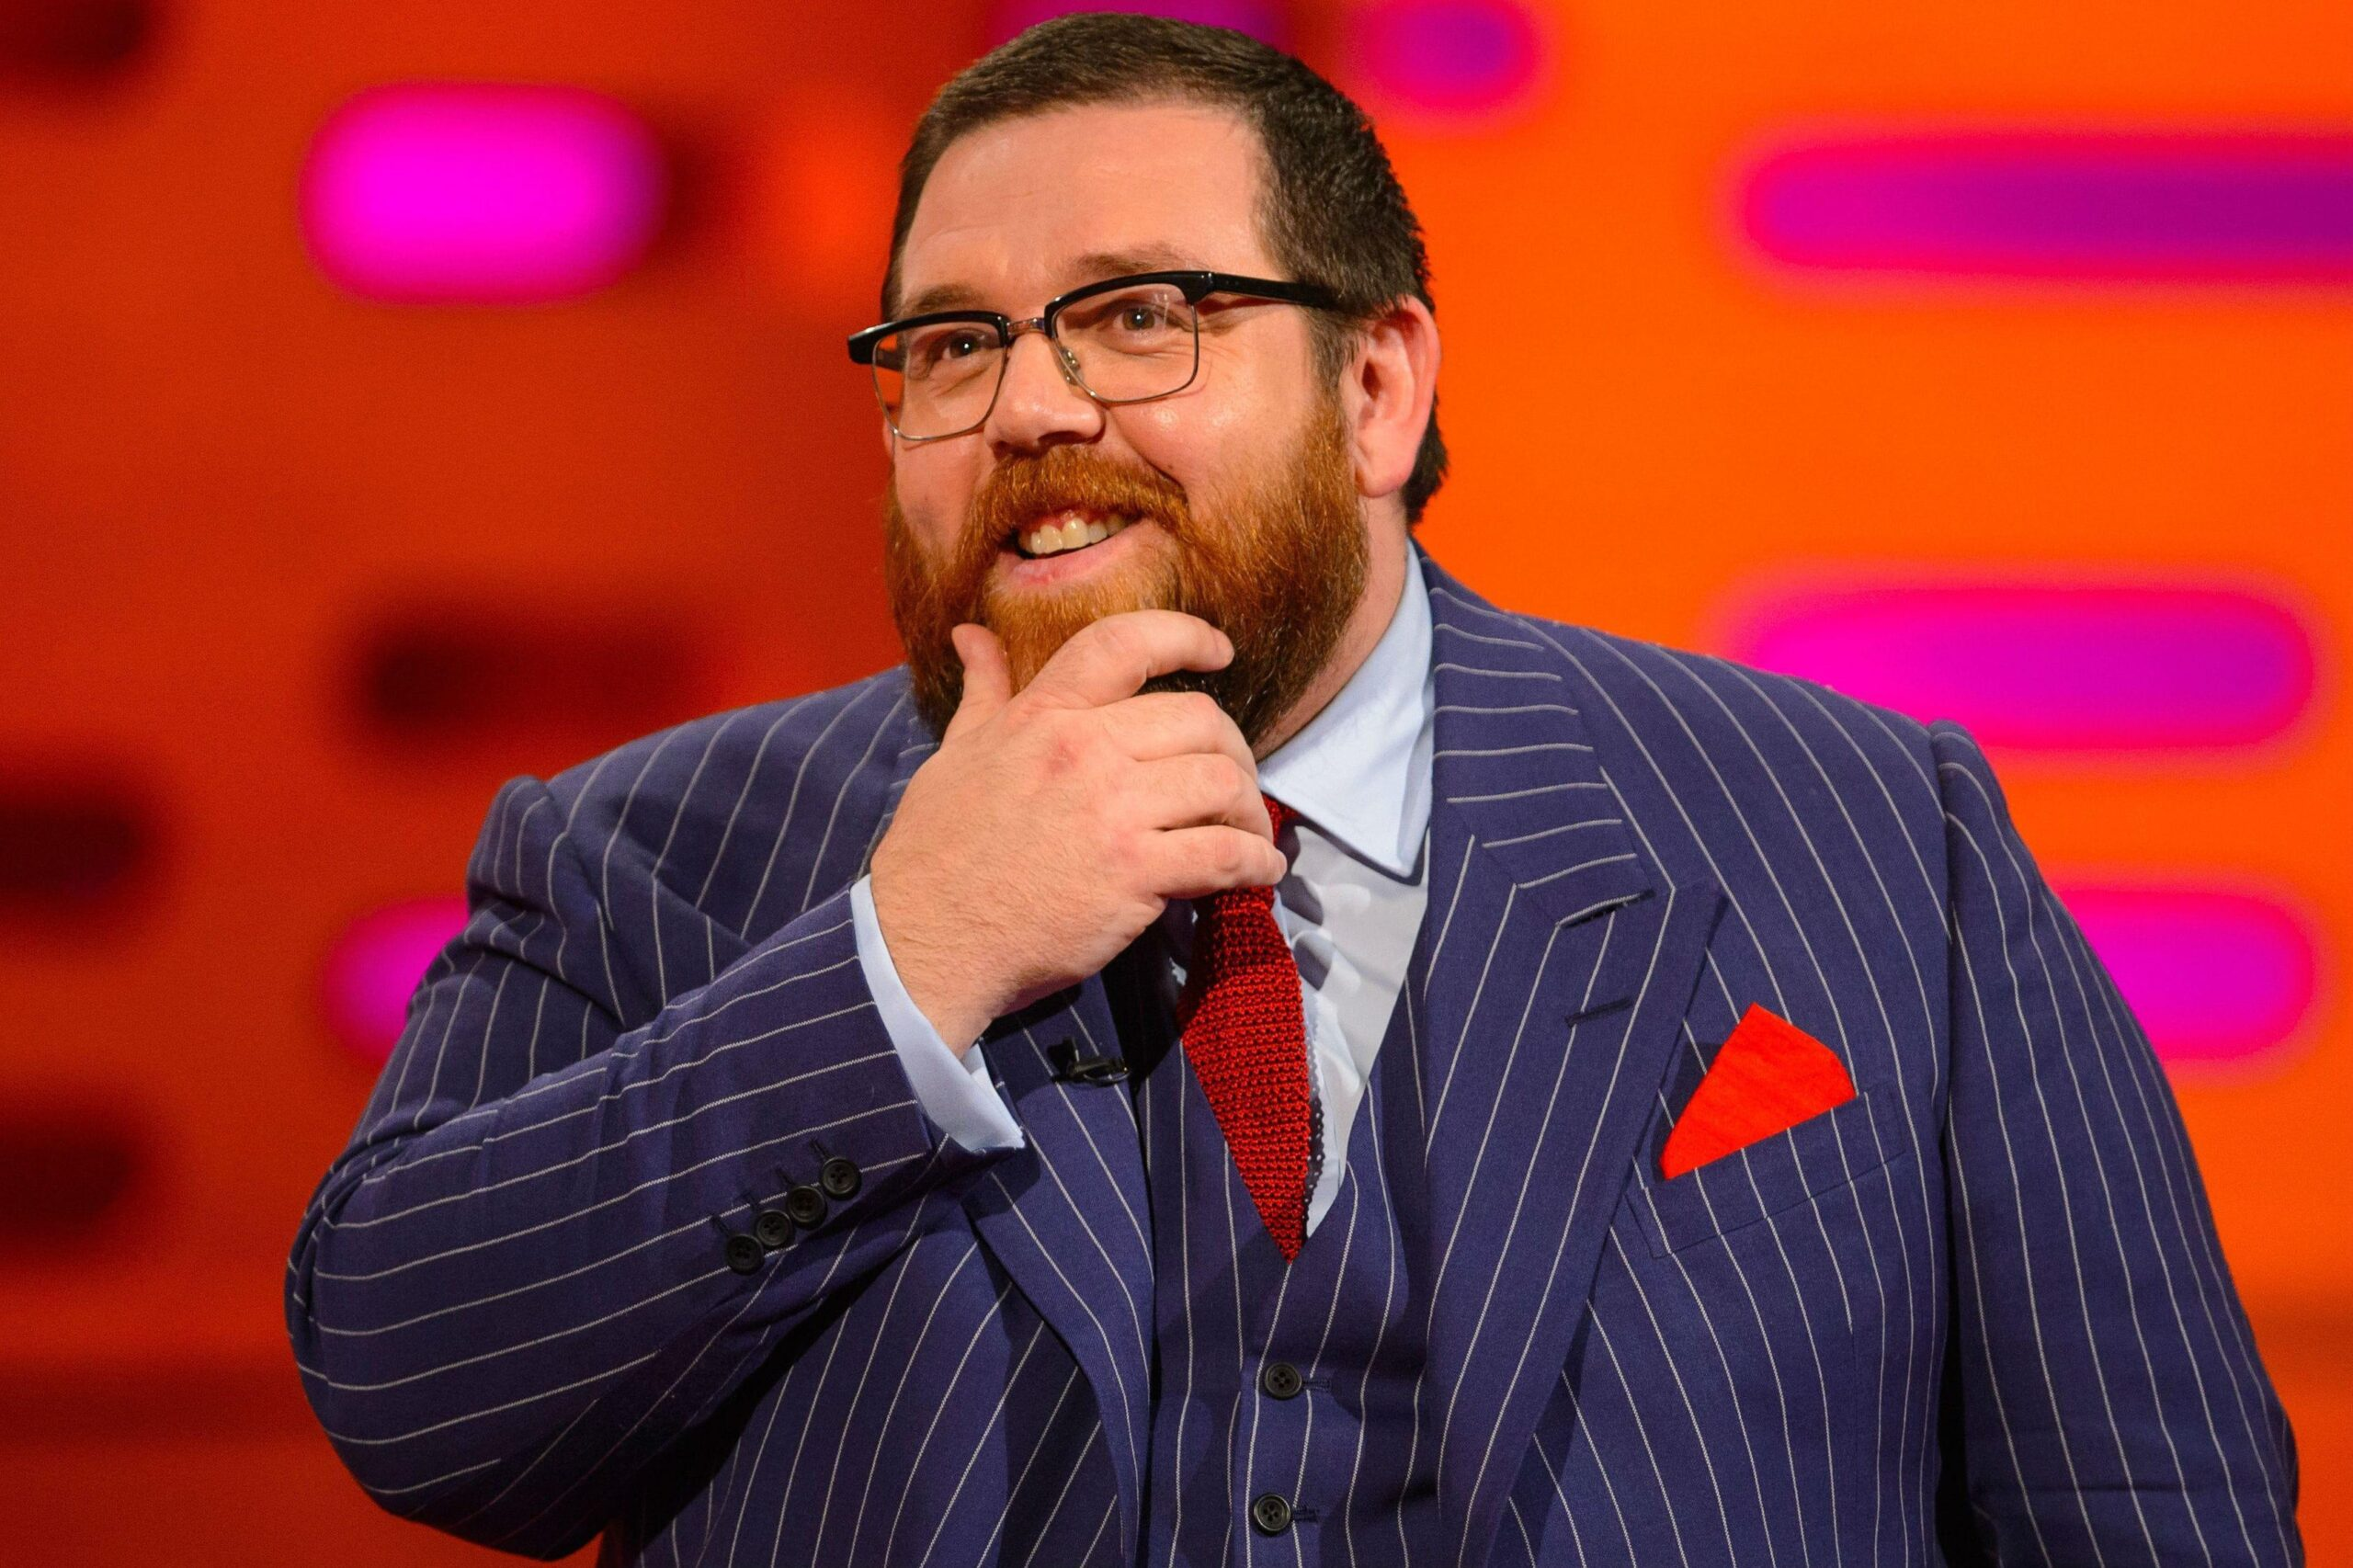 Nick Frost Phone number, Email Id, Fanmail, Instagram, Tiktok, and Contact Details